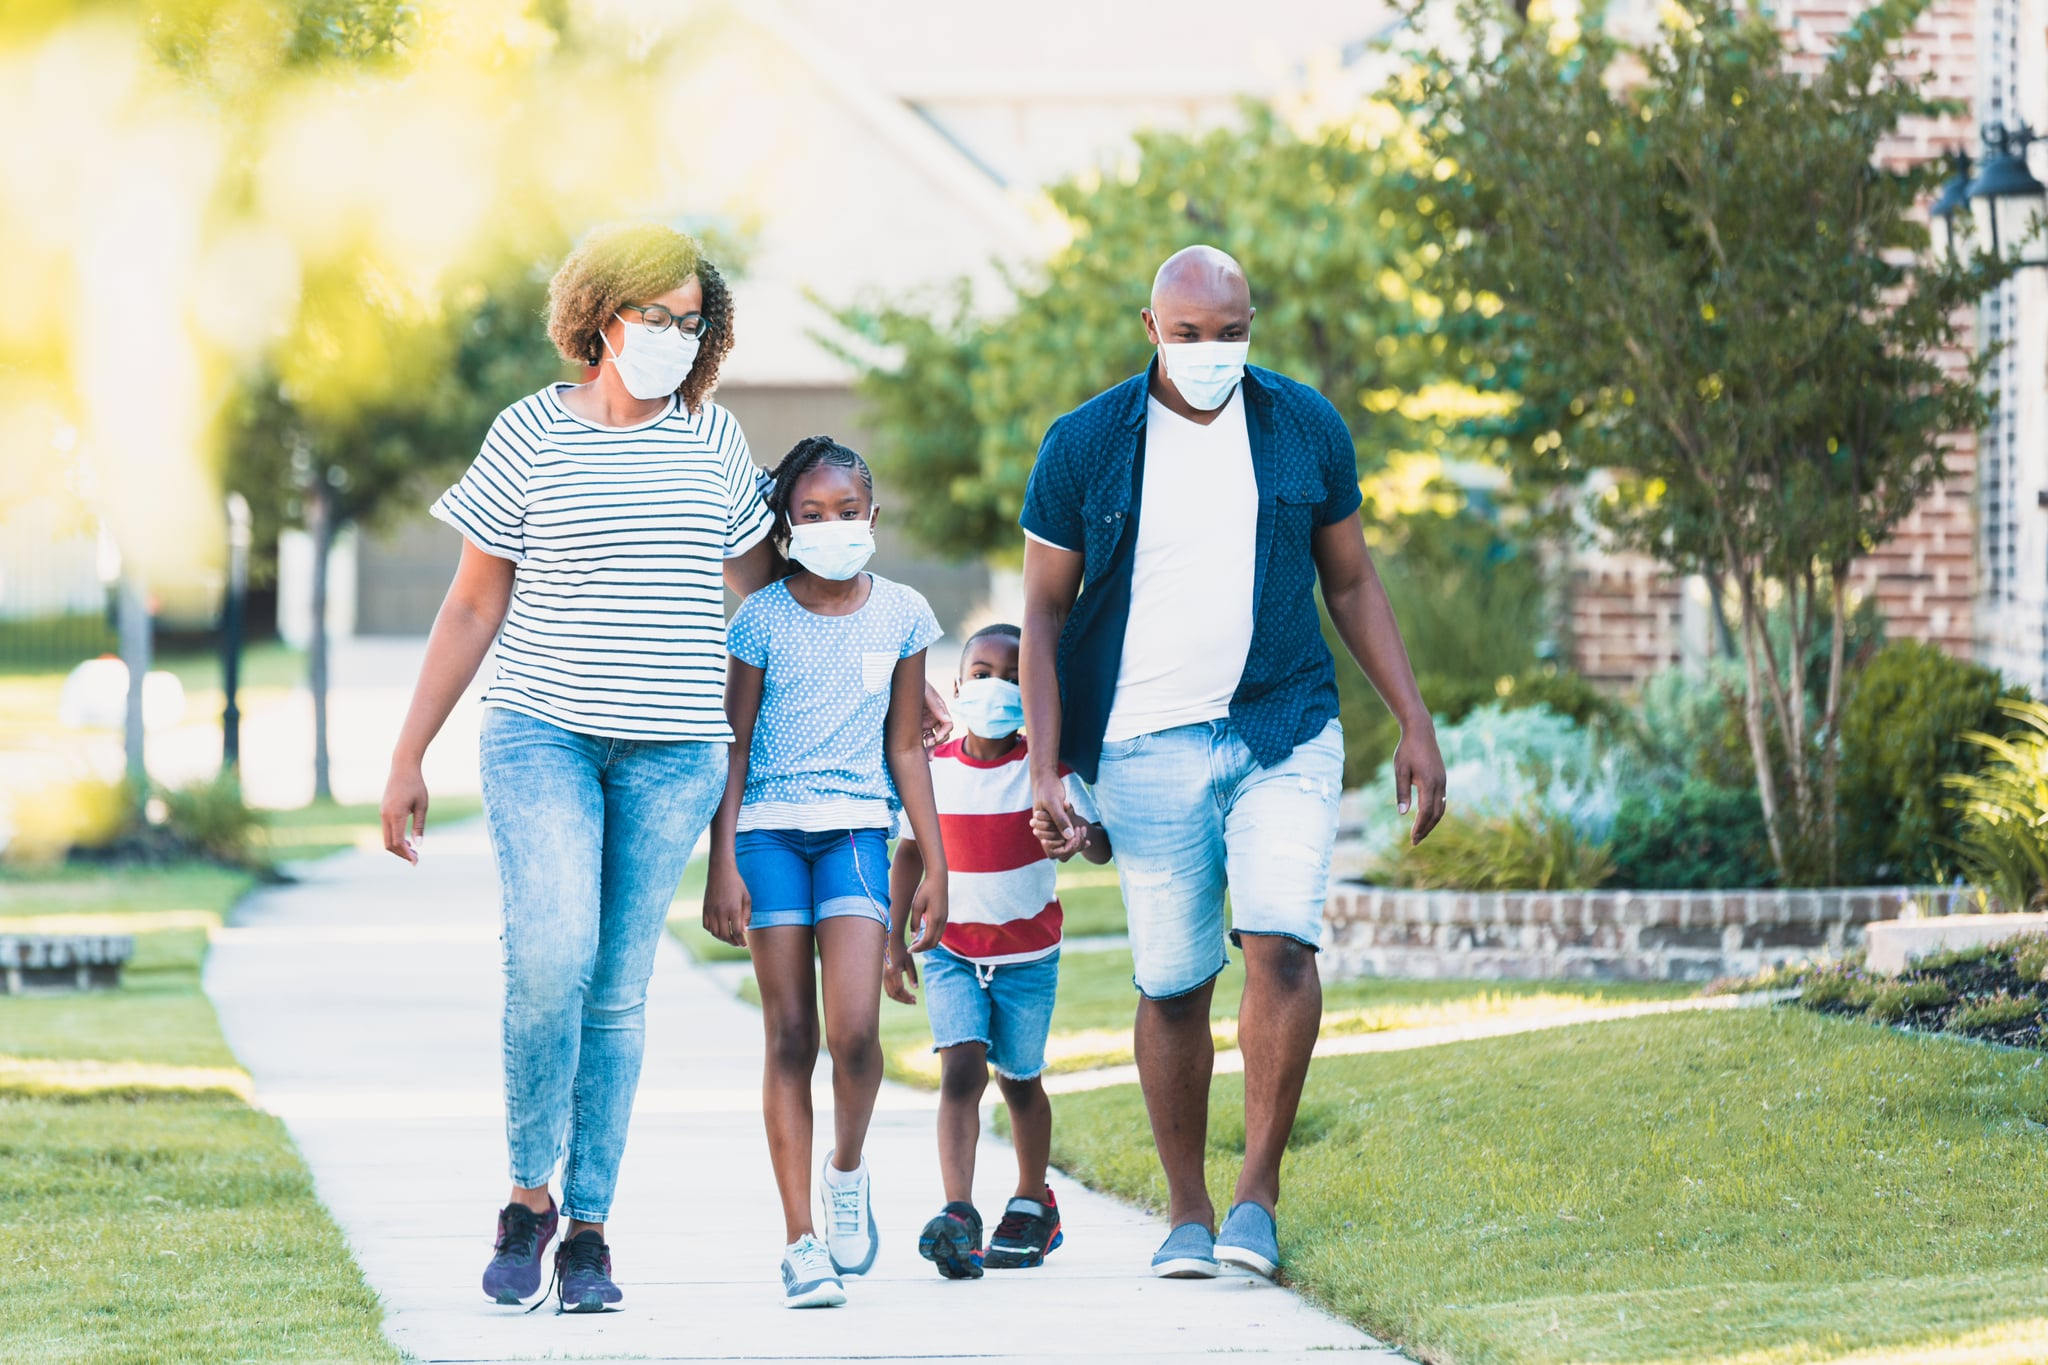 A happy family wear face masks while walking in their neighbourhood during the COVID-19 pandemic.